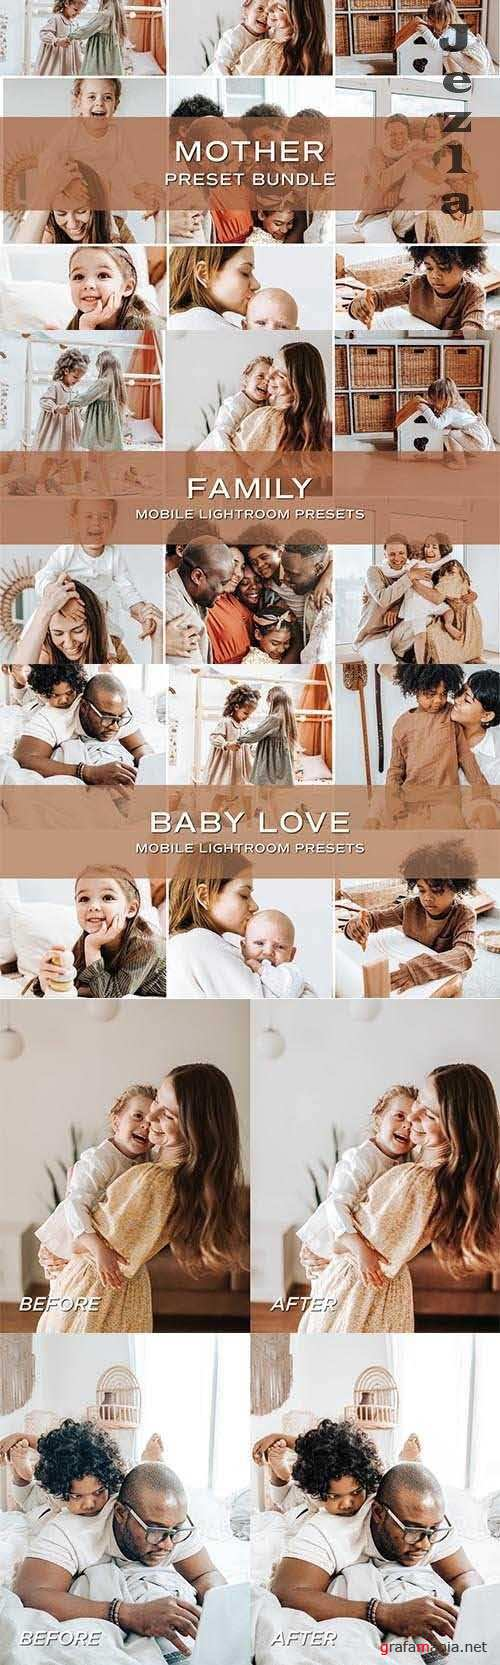 CreativeMarket - 10 Family Lightroom Preset Bundle 5701850